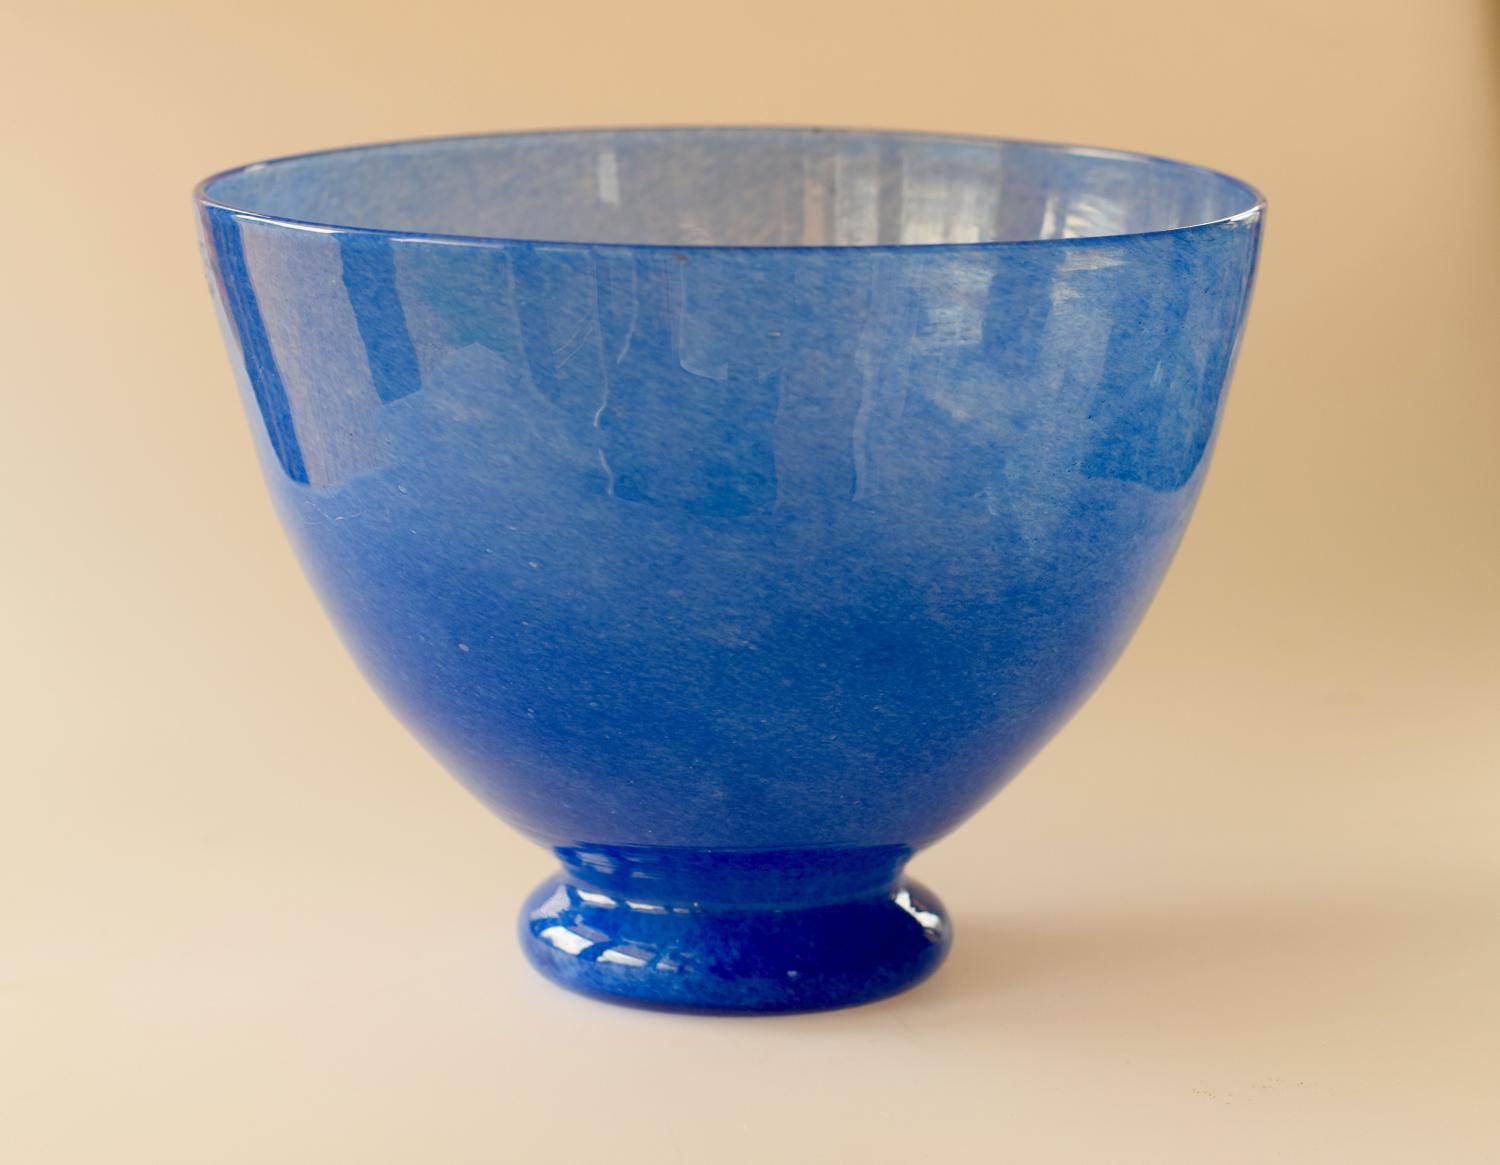 Blue cloudy bowl